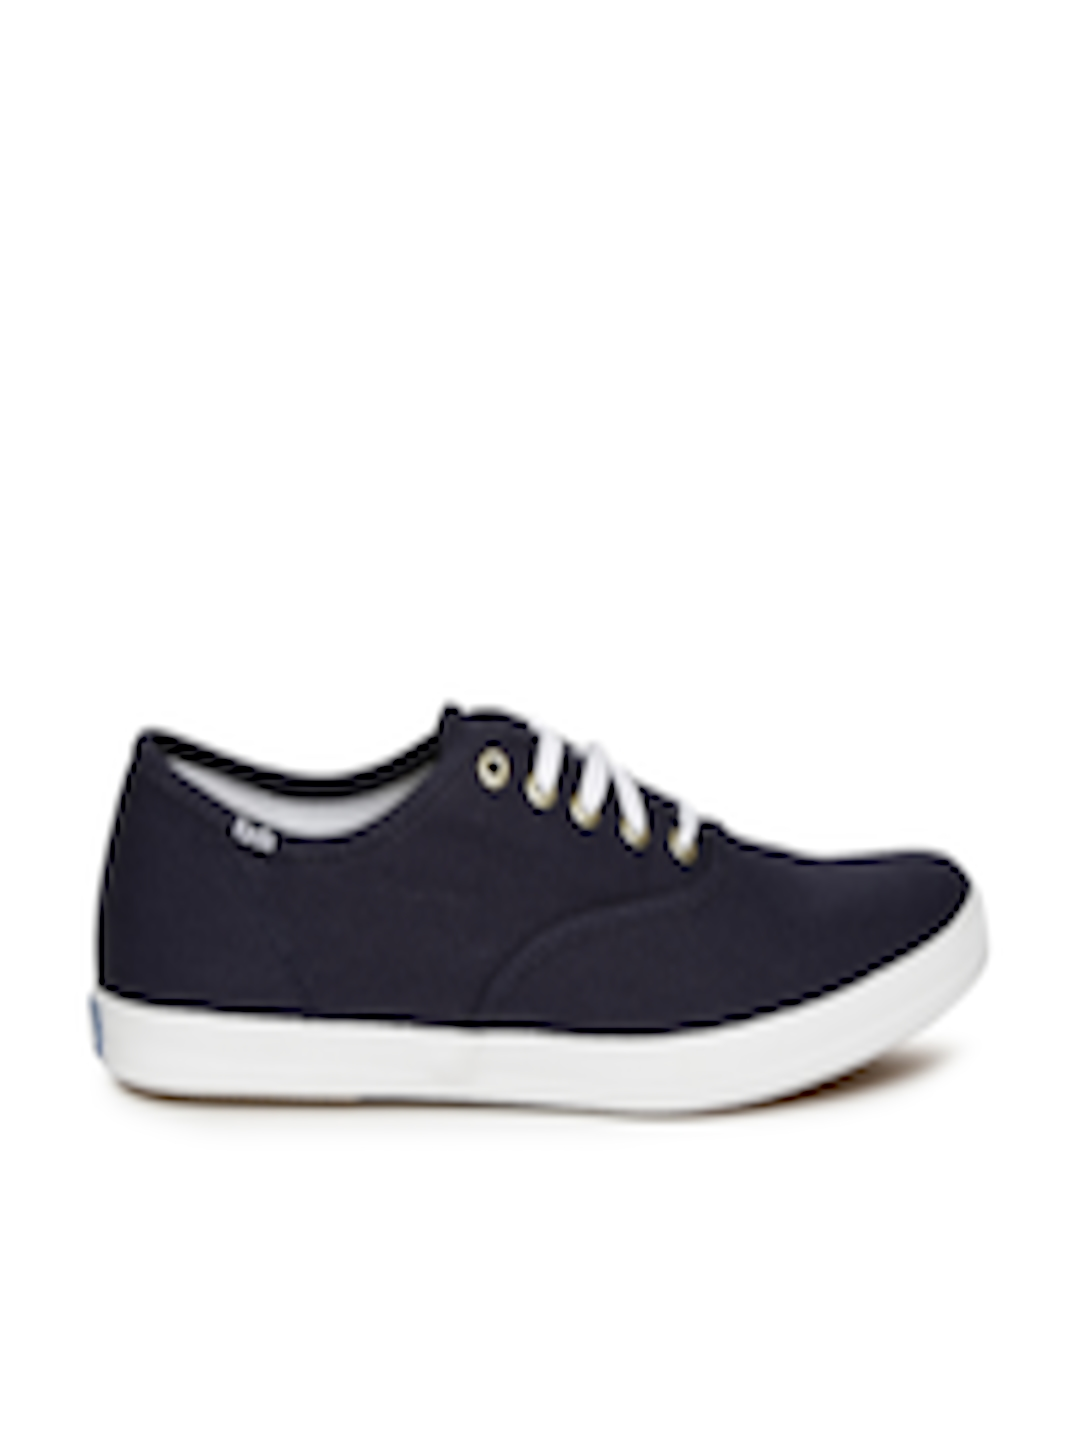 31a5f6c608c Buy Keds Men Navy Blue CHAMPION CVO Sneakers - Casual Shoes for Men 2013838